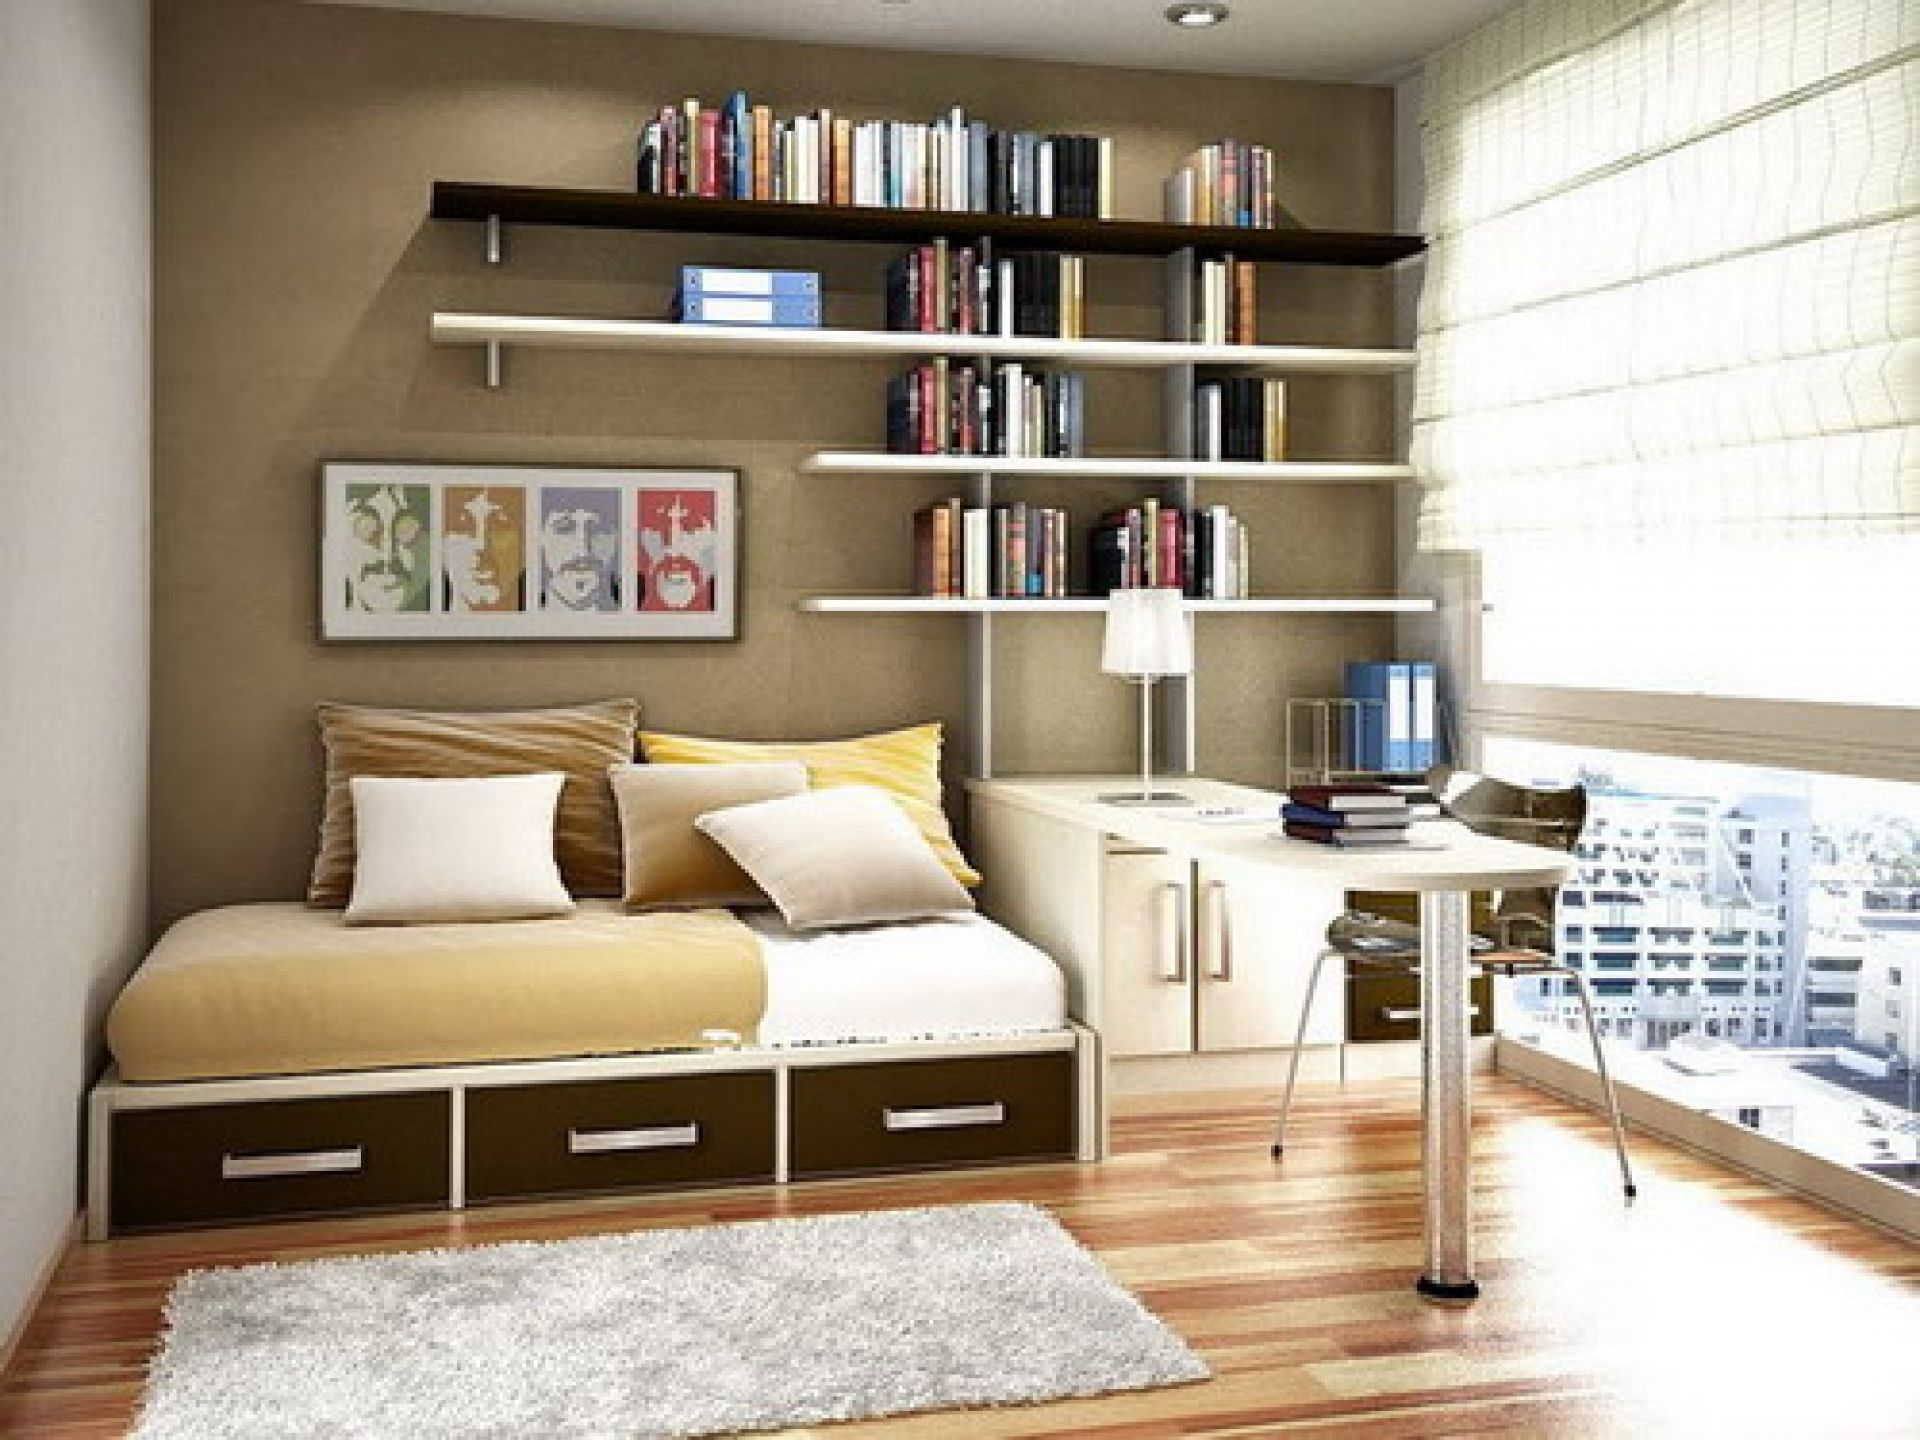 Modish Floating Bookshelves Over Sleeper Couch Storage And Pedestal